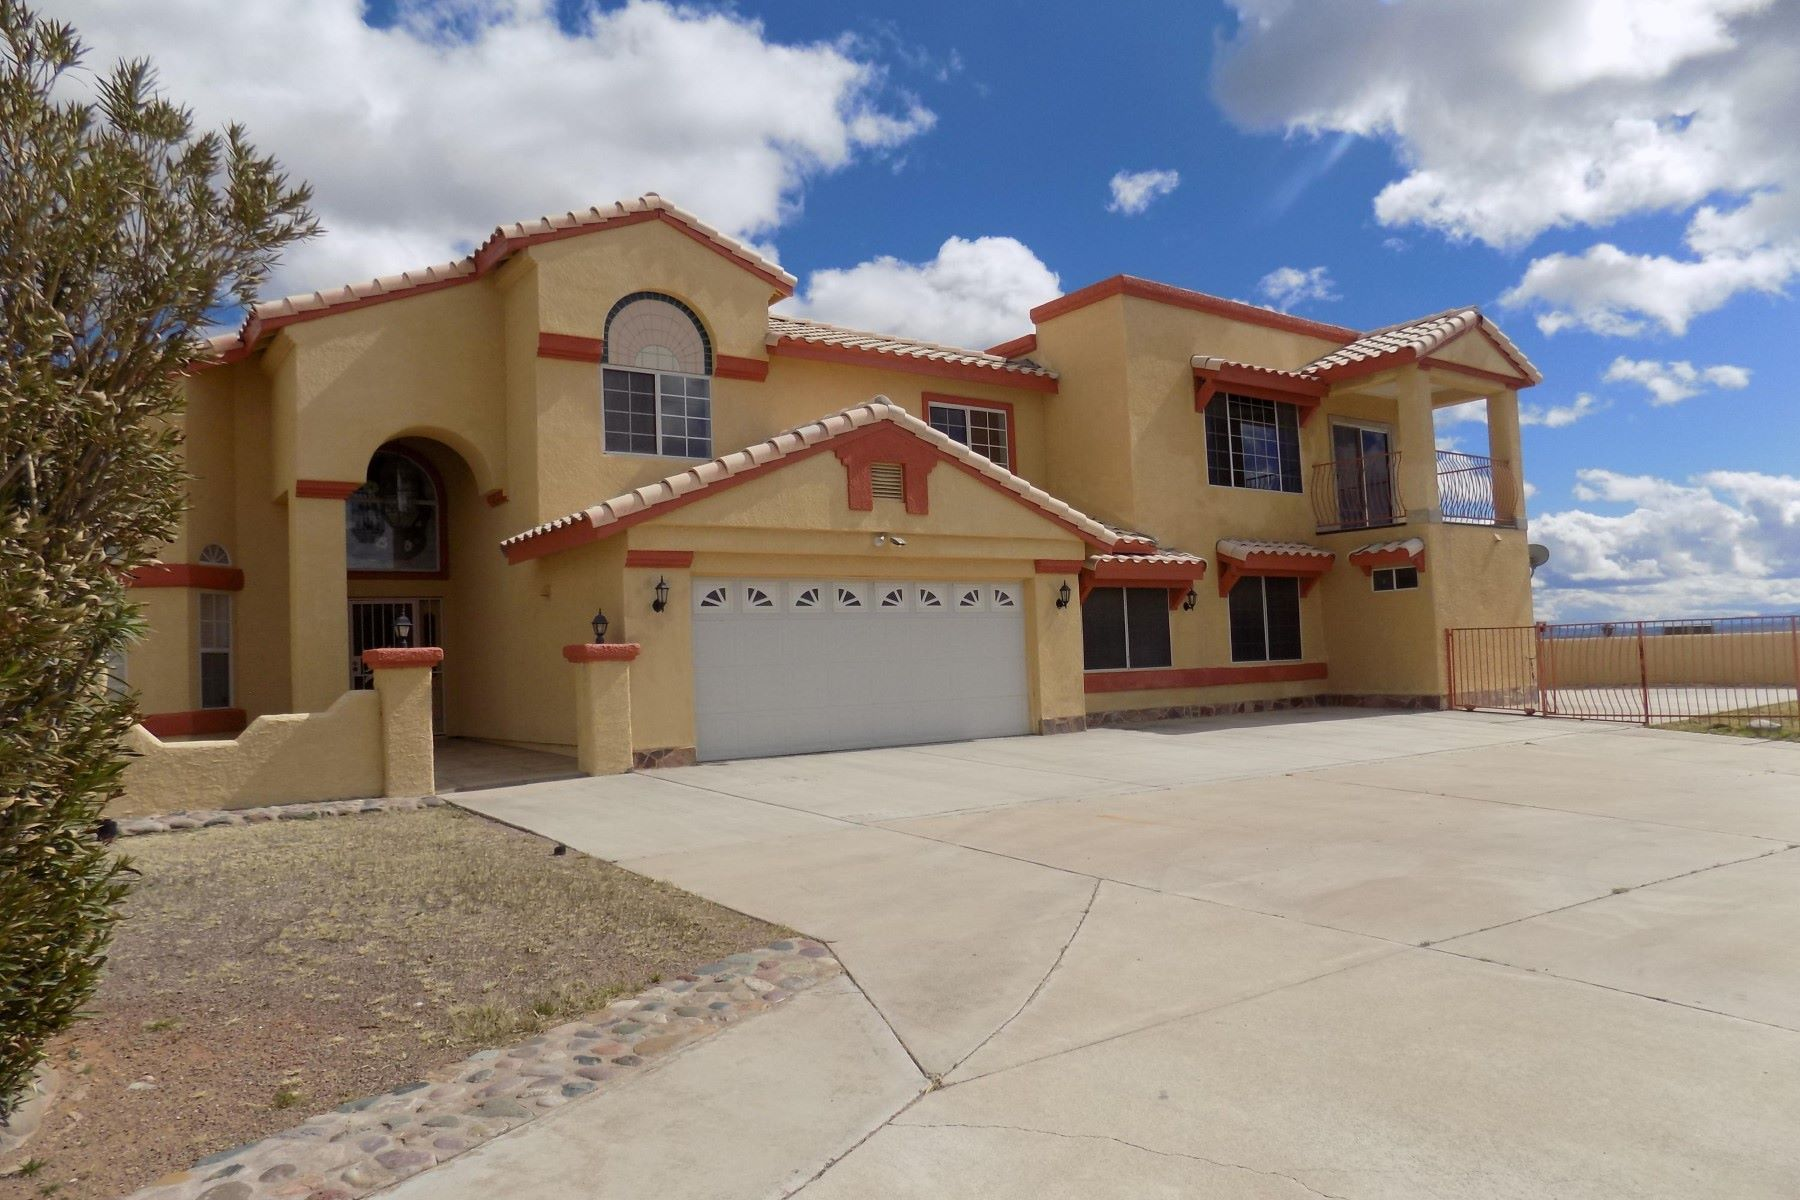 Single Family Home for Sale at Well maintained 5 bedroom home in the heart of Rio Rico 1254 Circulo Aguilar Rio Rico, Arizona, 85648 United States